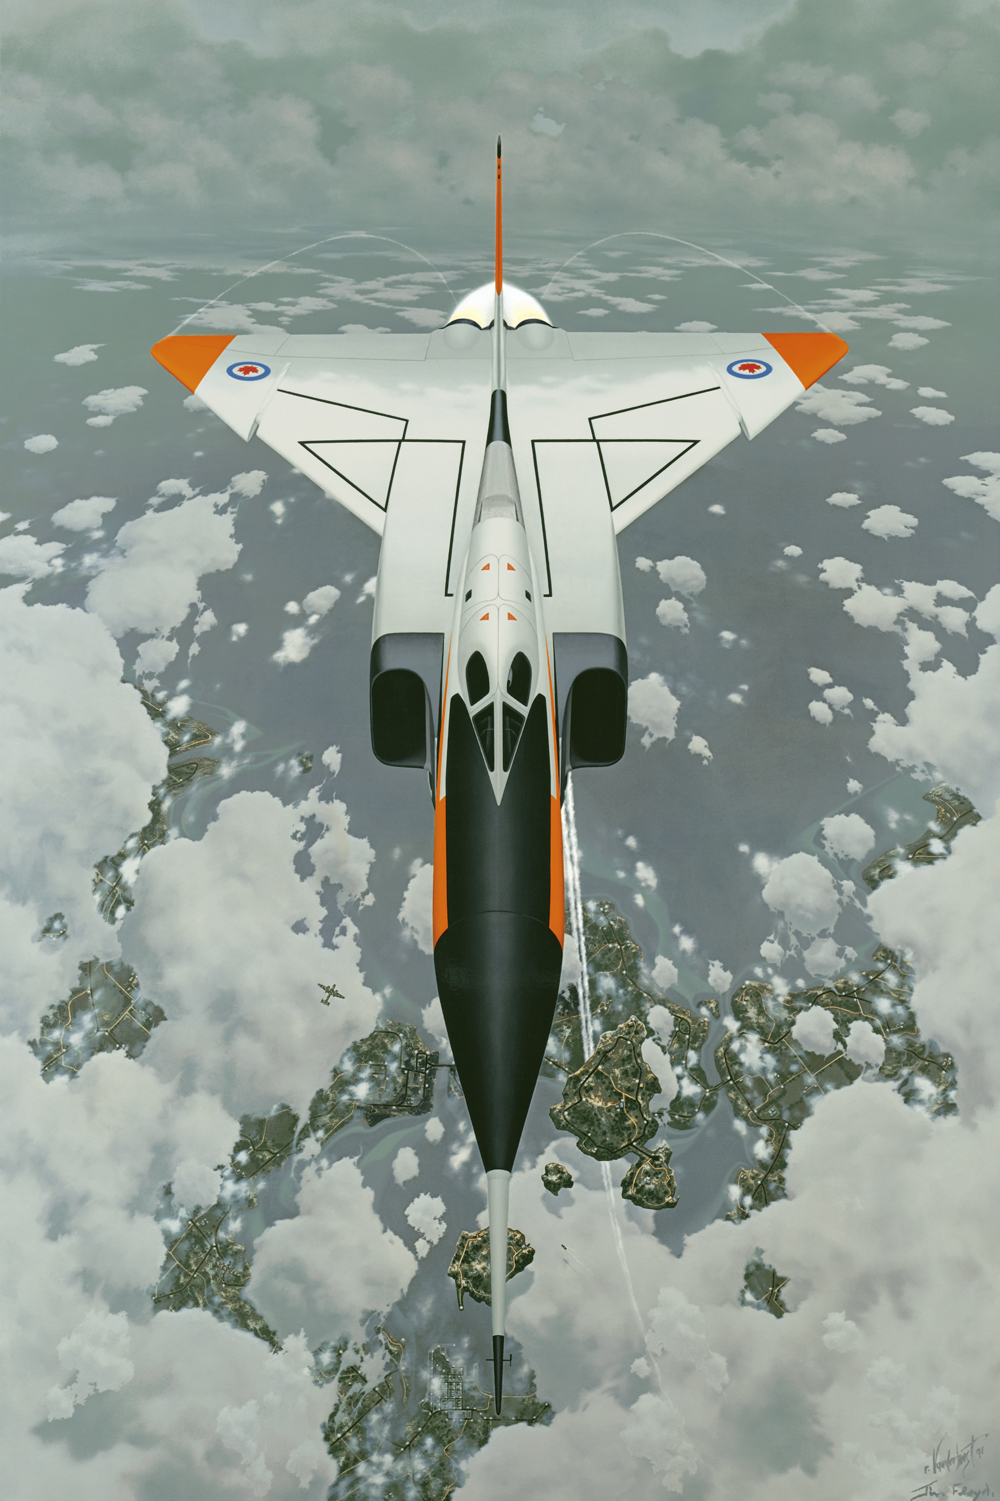 """11.    THE AVRO ARROW    1991, 24"""" x 38"""", Oil on Canvas. National Aviation Museum, Ottawa, Canada - Permanent art collection.    The Arrow is performing an inverted loop and the unusual perspective was designed to give the viewer a heightened sense of the maneuver. Directly below and to the right of the nose cone you will find several floating segments of land and a small boat floating above the clouds (the contrail passes beneath the largest piece of land). This was done to depict a sense of disorientation - the same experience a pilot may have executing such a maneuver."""